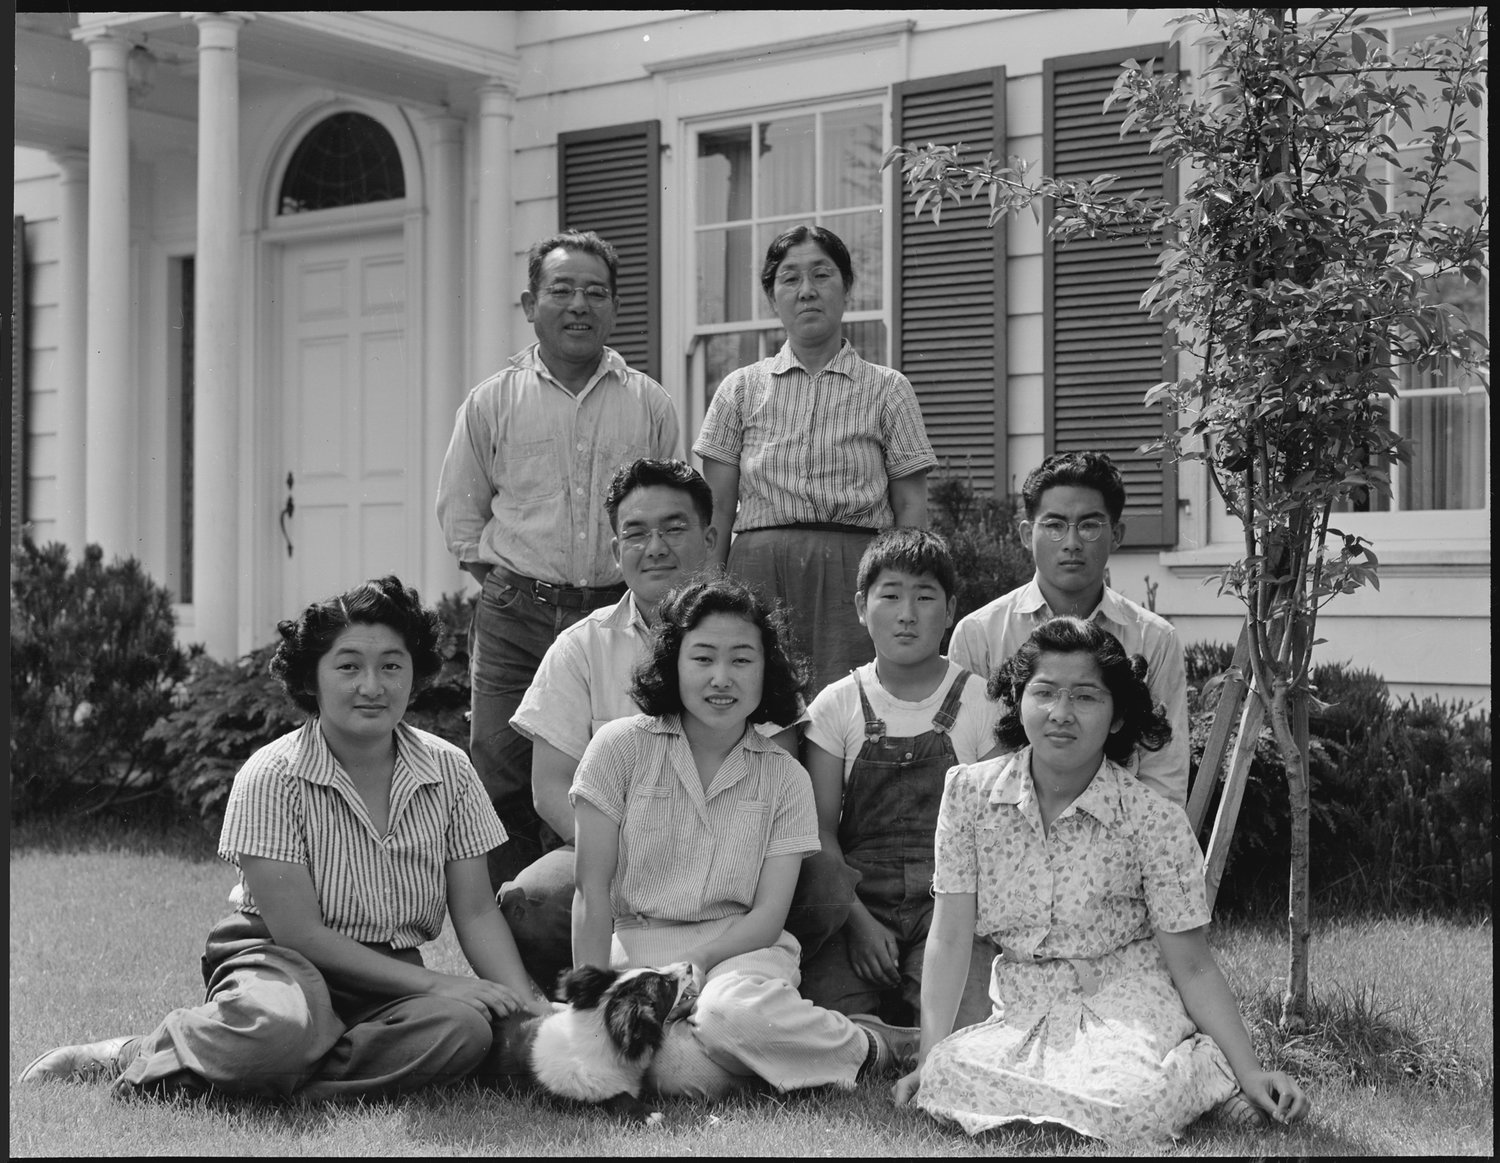 Mountain View, California. Members of the Shibuya family are pictured at their home before evacuation. The father and the mother were born in Japan and came to this country in 1904. At that time the father had 0 in cash and a basket of clothes. He later built a prosperous business of raising select varieties of chrysanthemums which he shipped to eastern markets under his own trade name. Six children in the family were born in the United States. The four older children attended leading California Universities. Evacuees of Japanese ancestry will be housed in War Relocation Authority Centers for the duration.